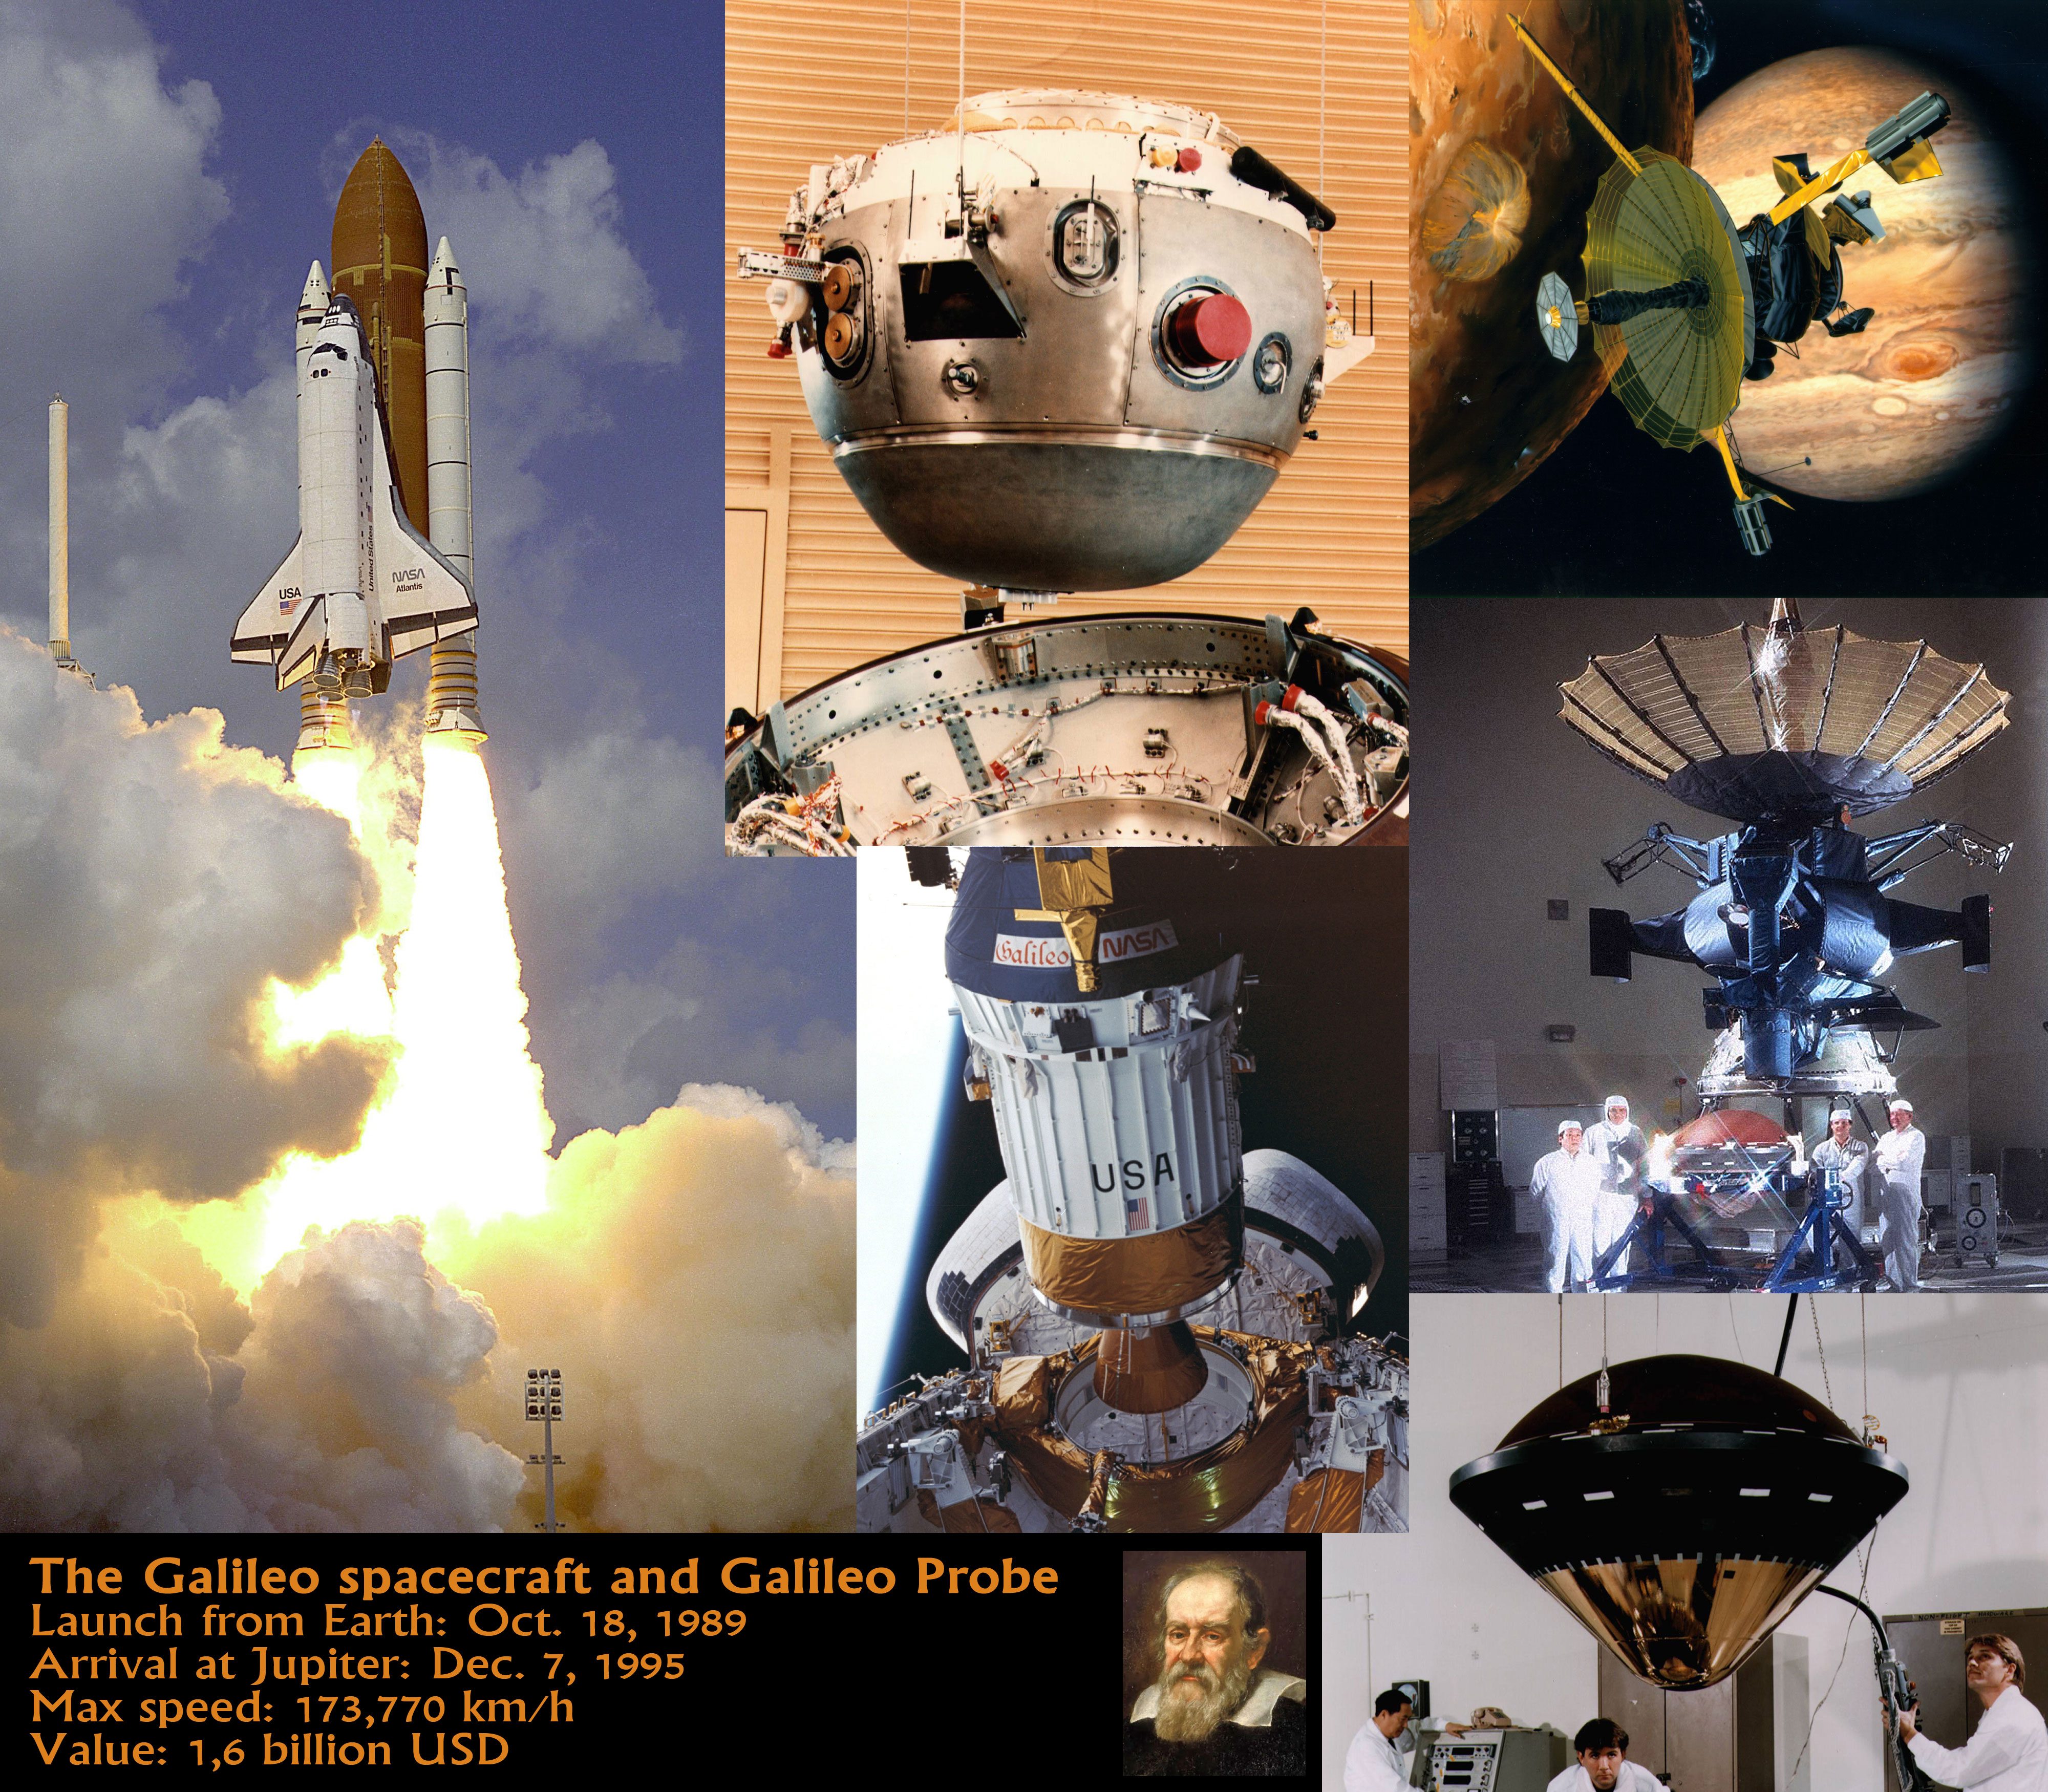 The-Galileo-Spacecraft-and-Probe | The Human Adventures in Space Exploration